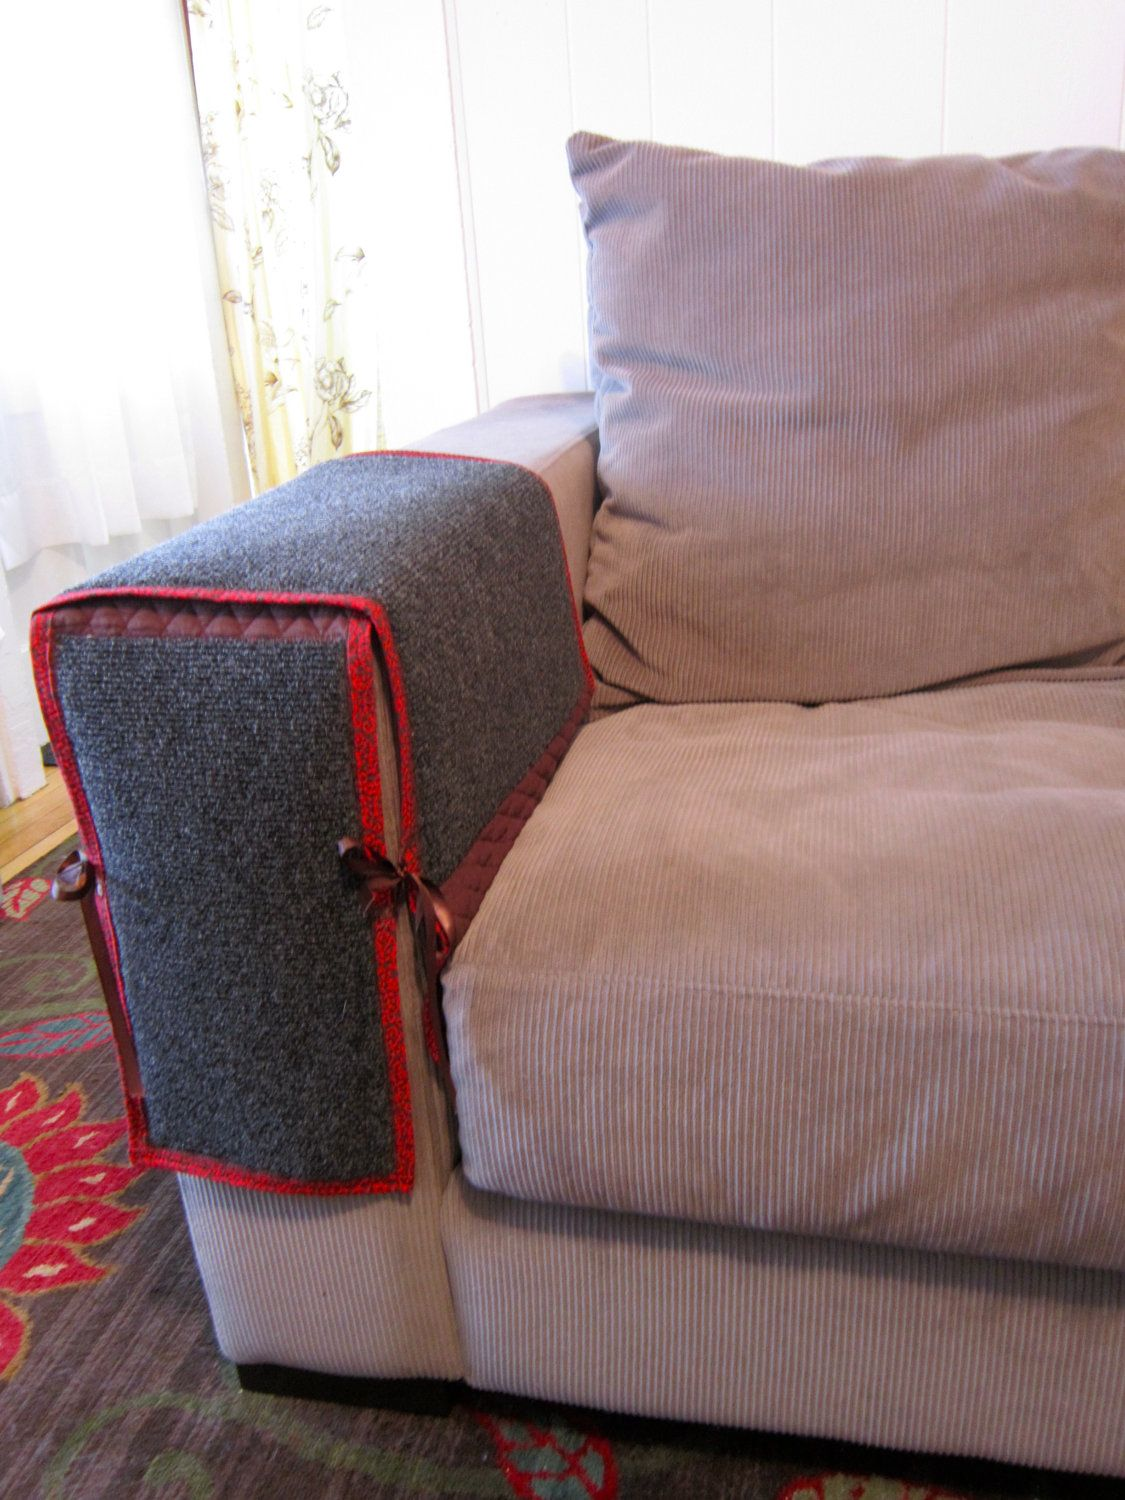 cat sofa arm covers cushion repair london scratching couch or chair protection via etsy ideas